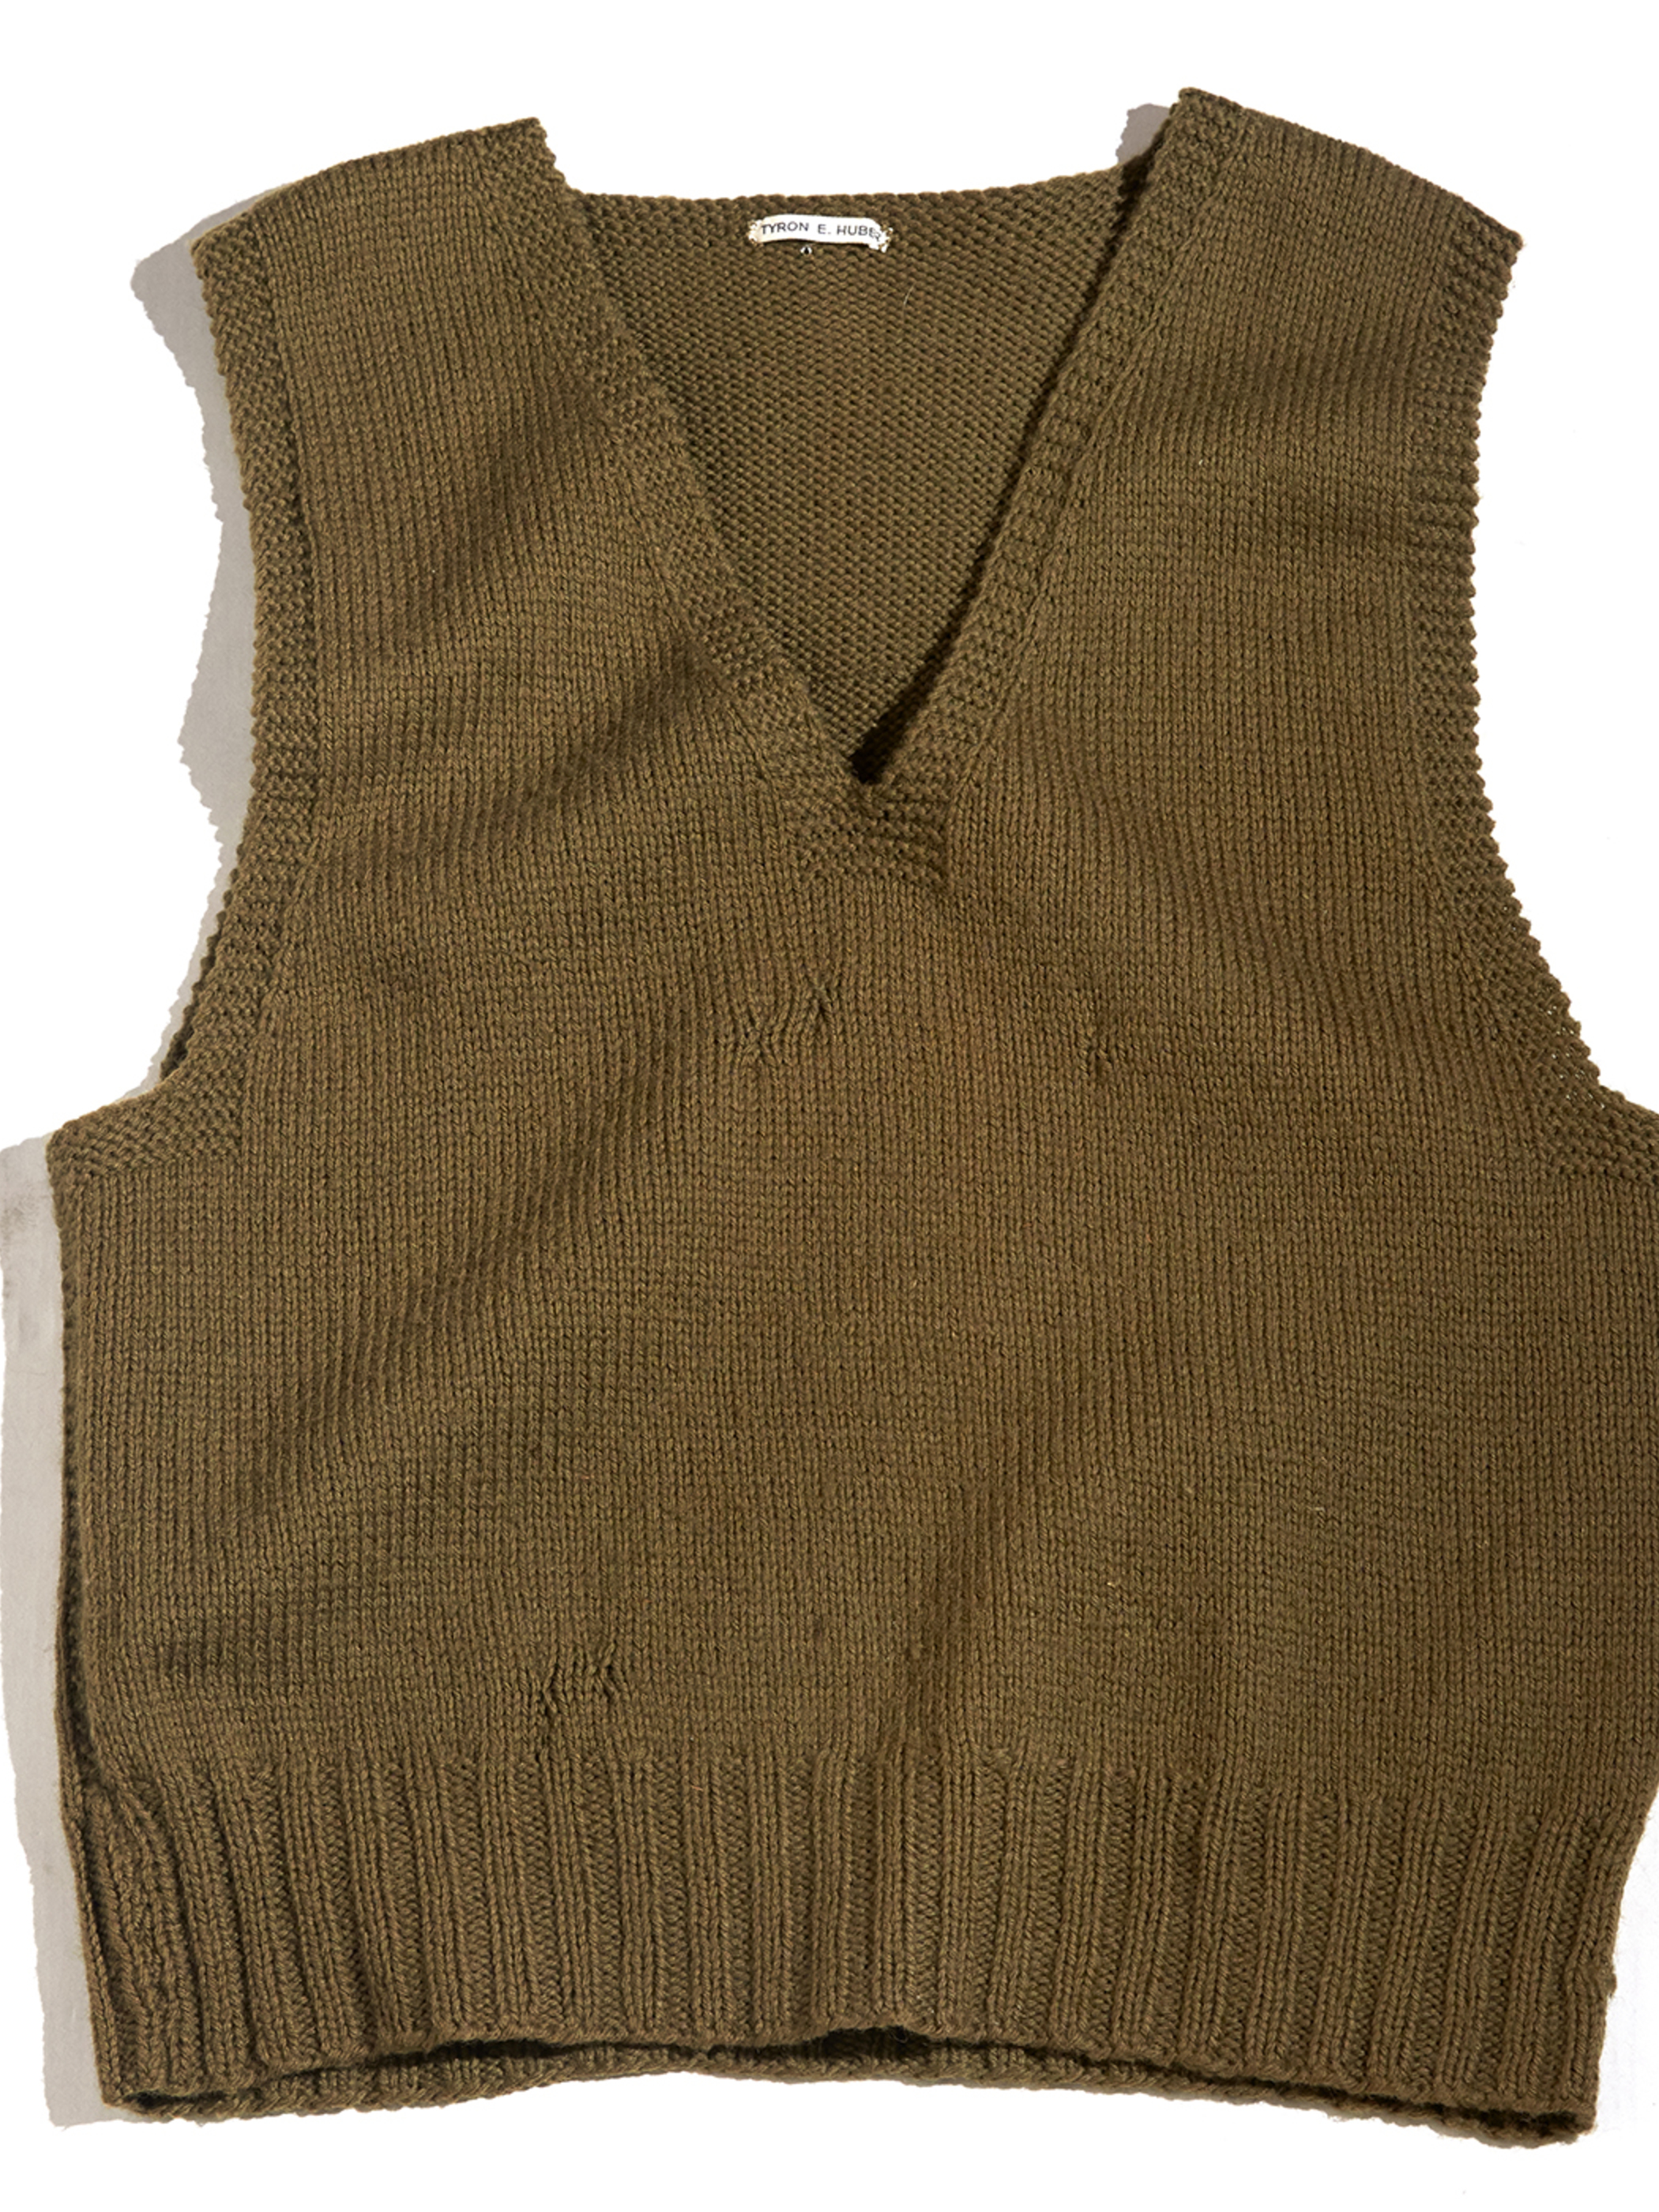 """1940s """"American Red Cross"""" wool knit vest -OLIVE-"""